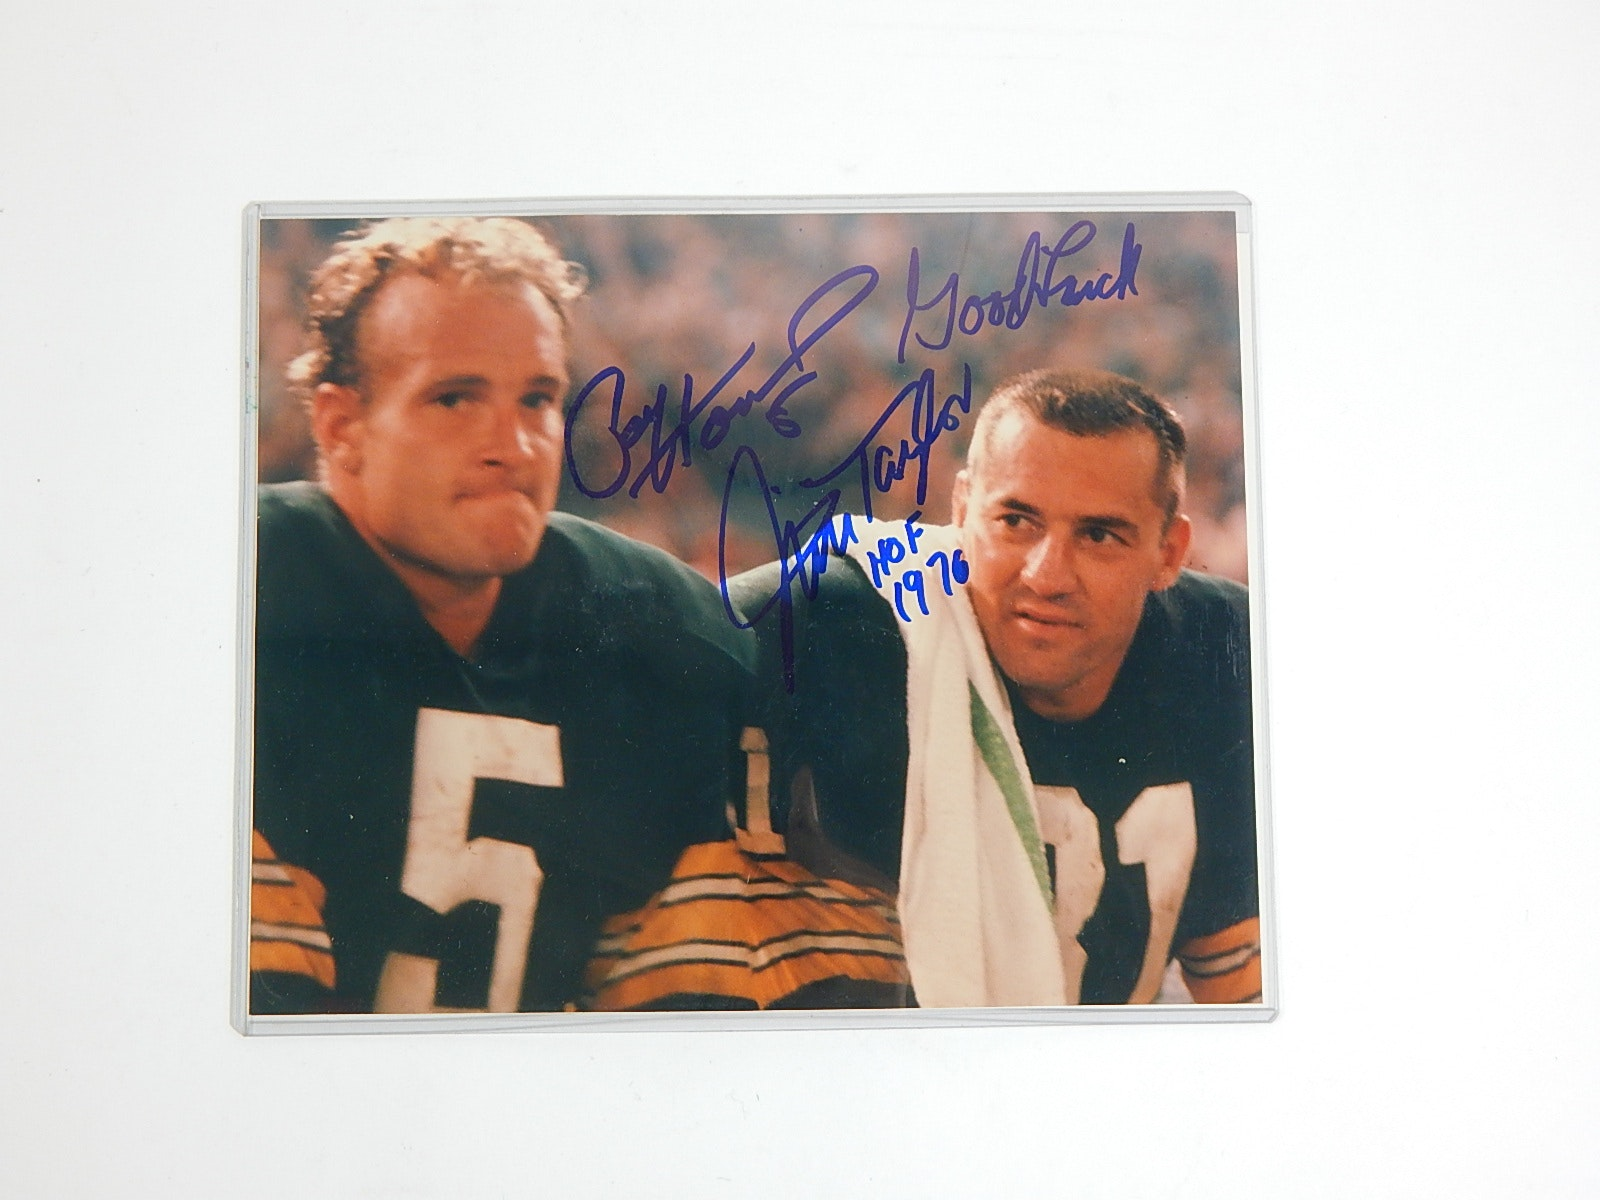 NFL Green Bay Packers Paul Hornung and Jim Taylor Signed Photograph